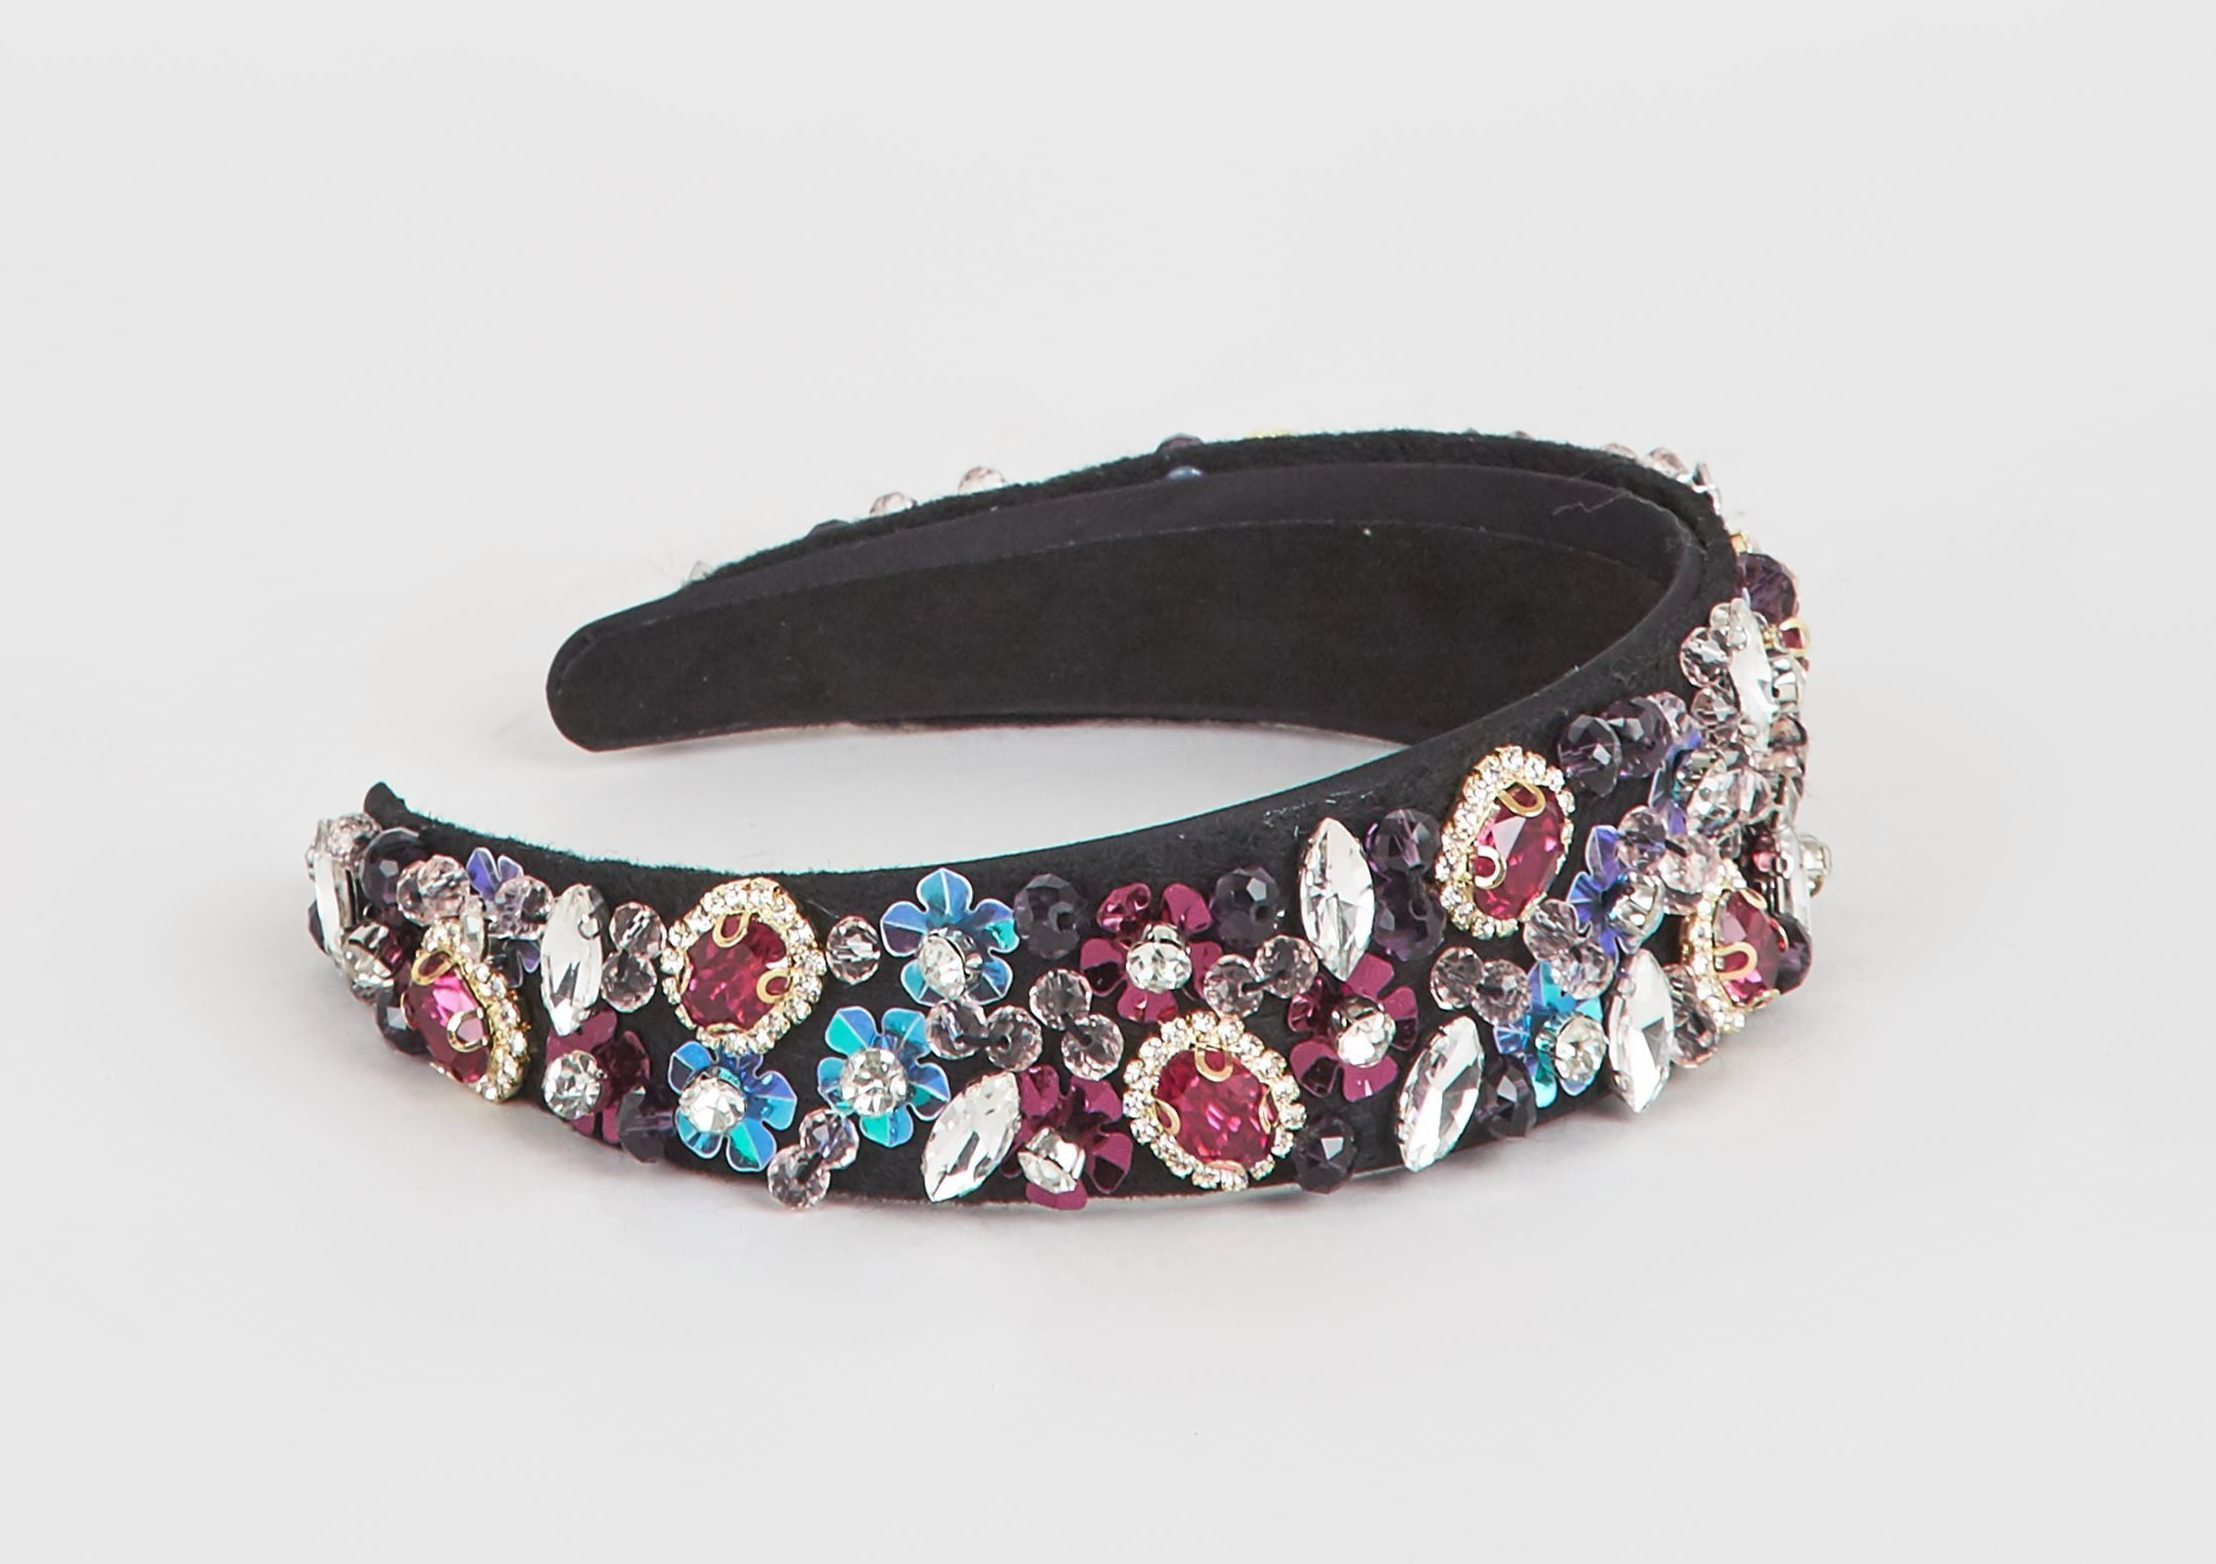 Stay on trend by sprucing up any outfit with a jewelled headband